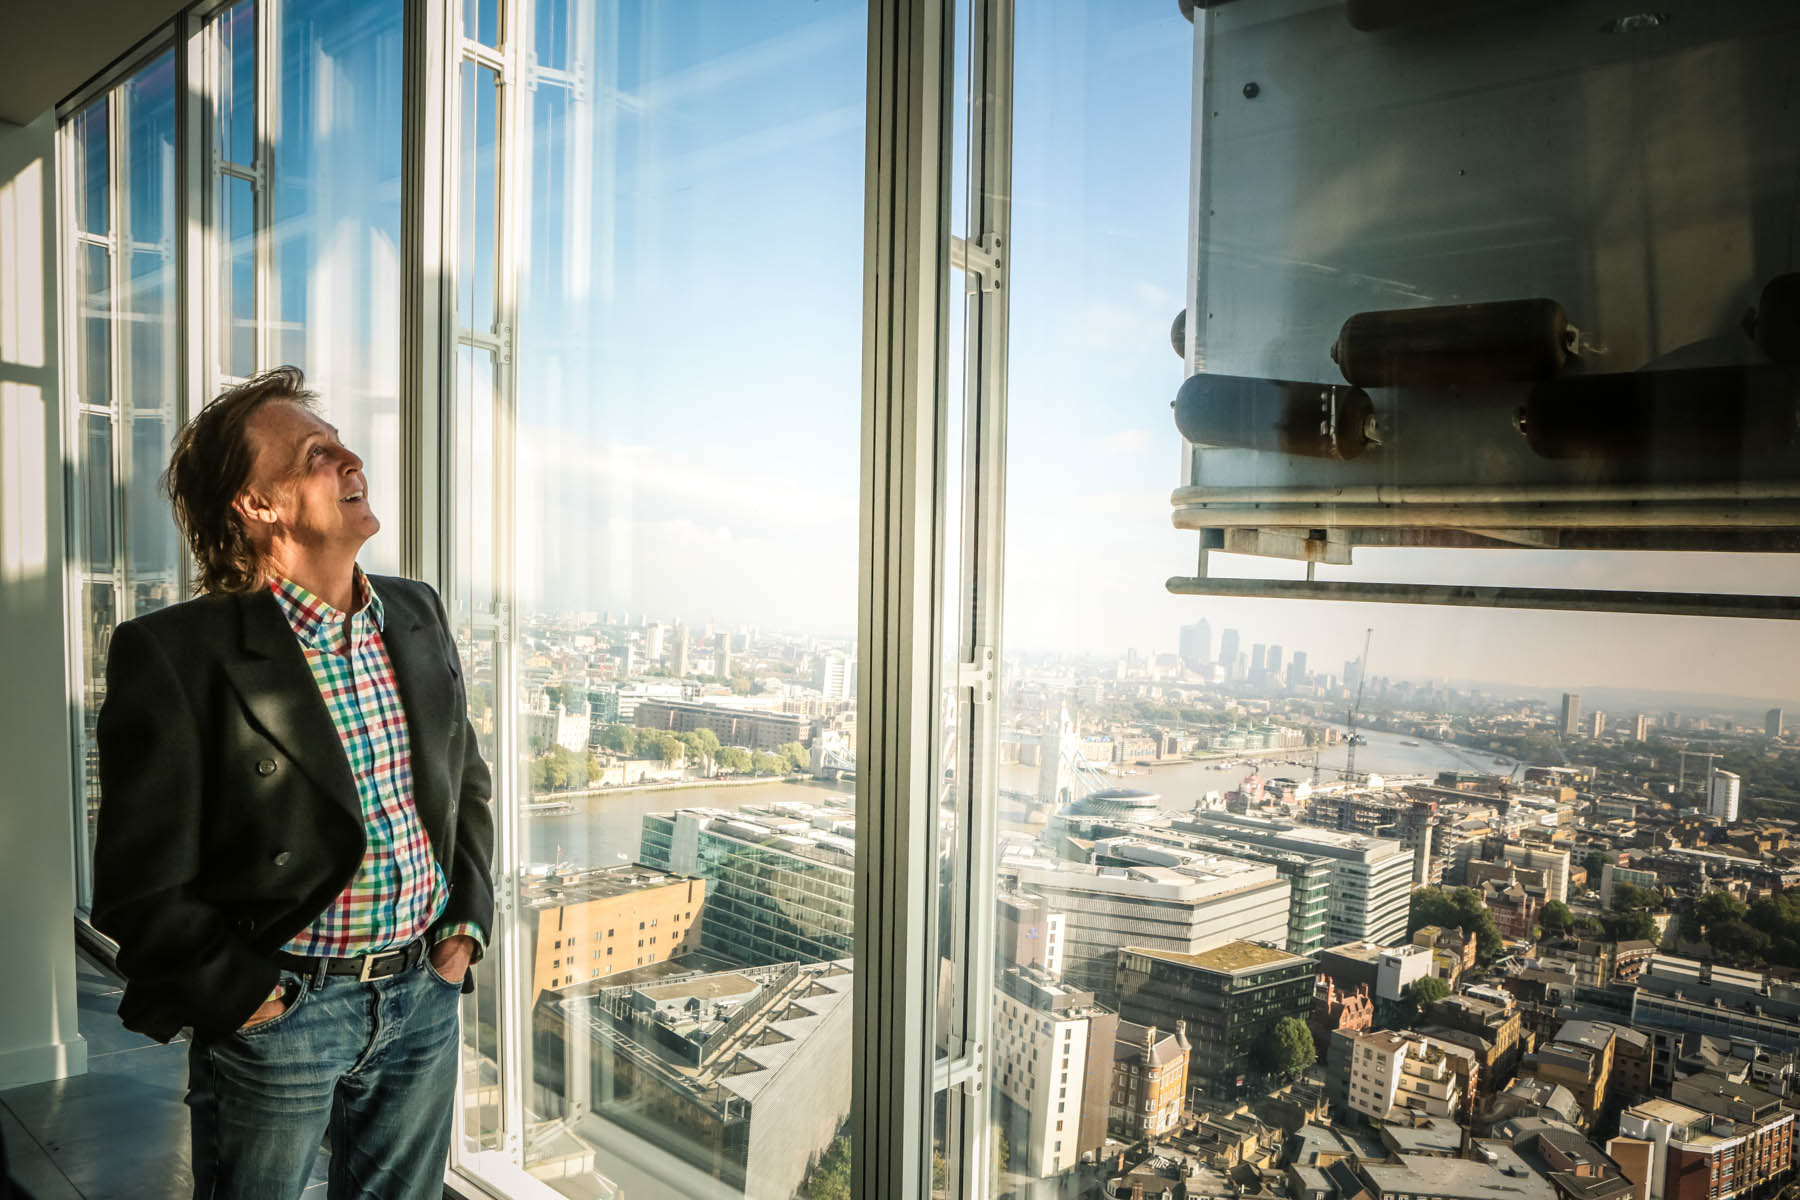 Paul McCartney at the Shard by Christie Goodwin